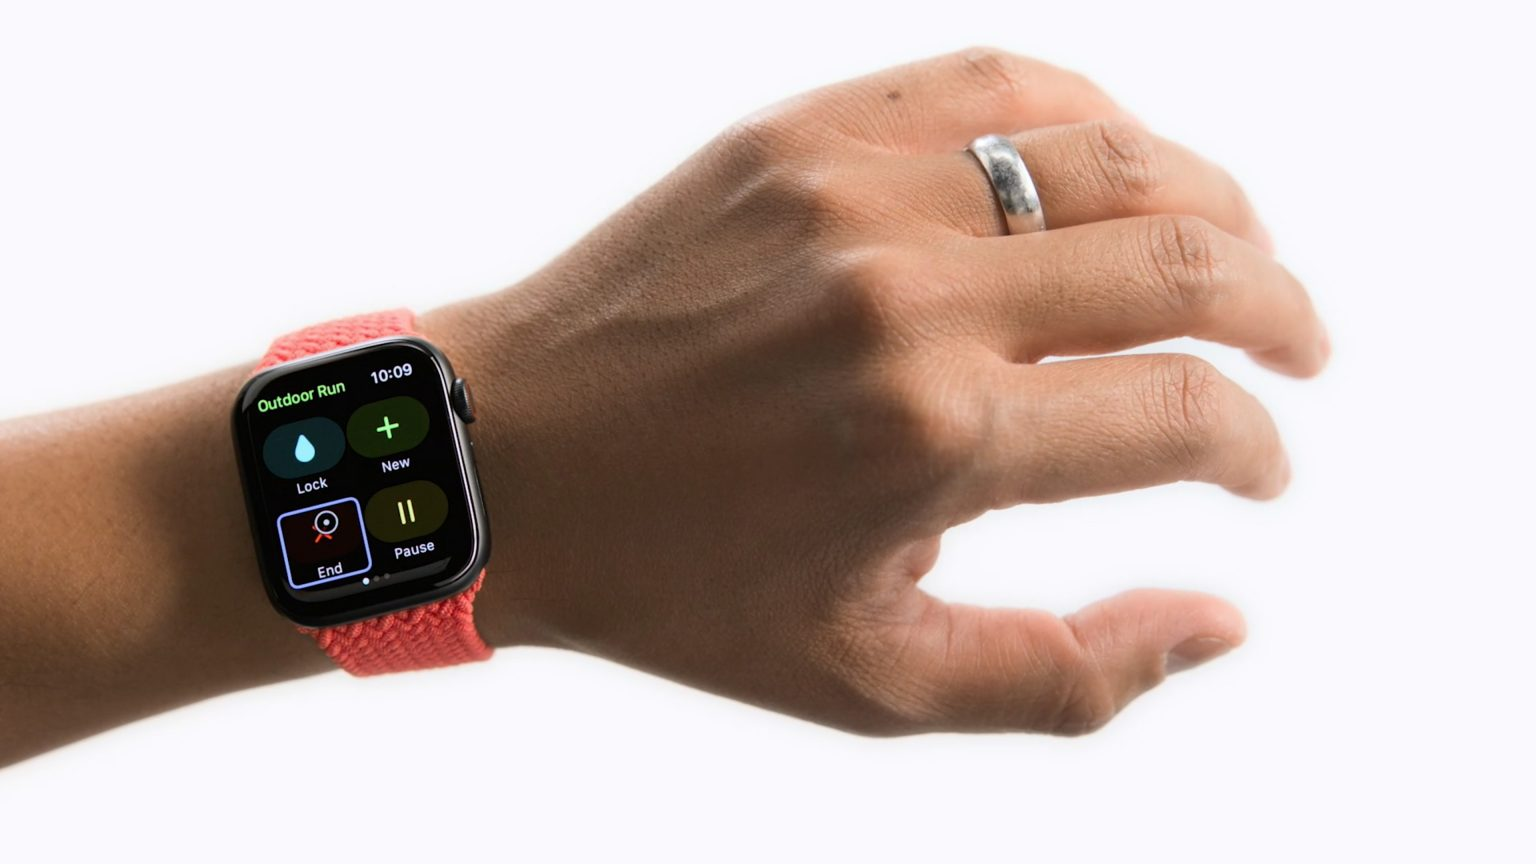 AssistiveTouch lets users control Apple Watch by clenching their fists.